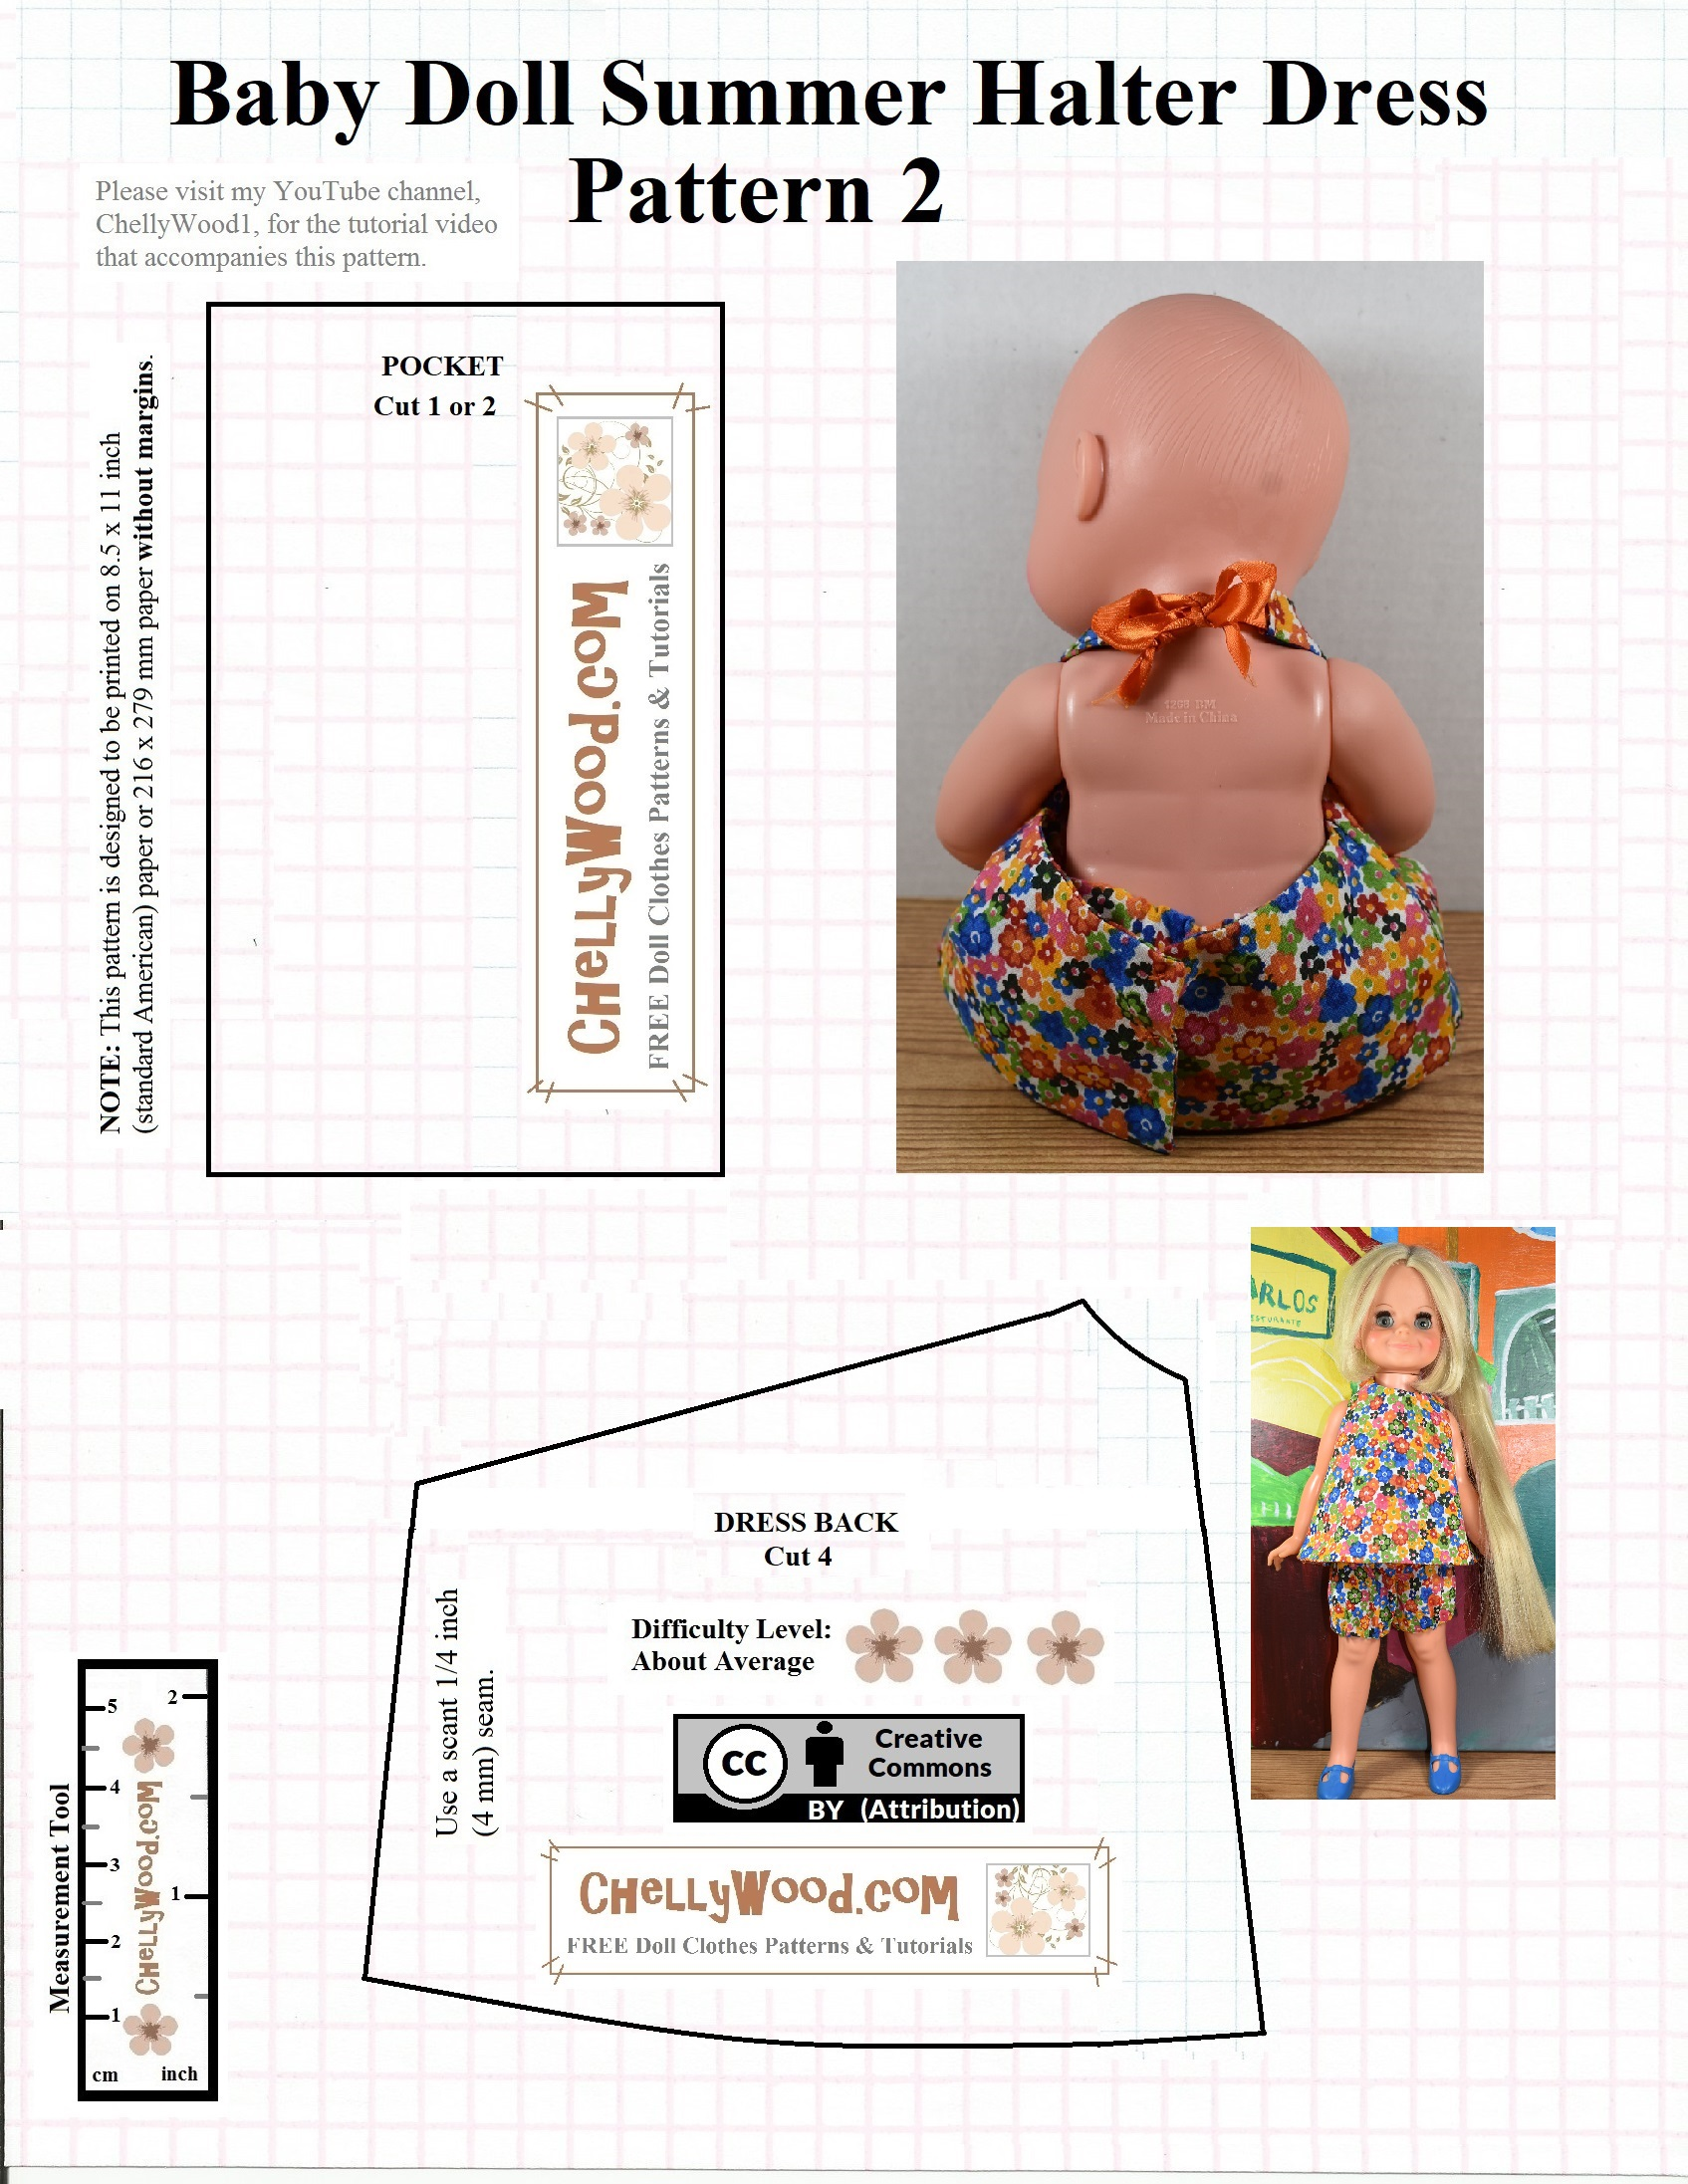 Sew A Summer Outfit For Baby Dolls W Free Pattern Chellywood Com Free Doll Clothes Patterns